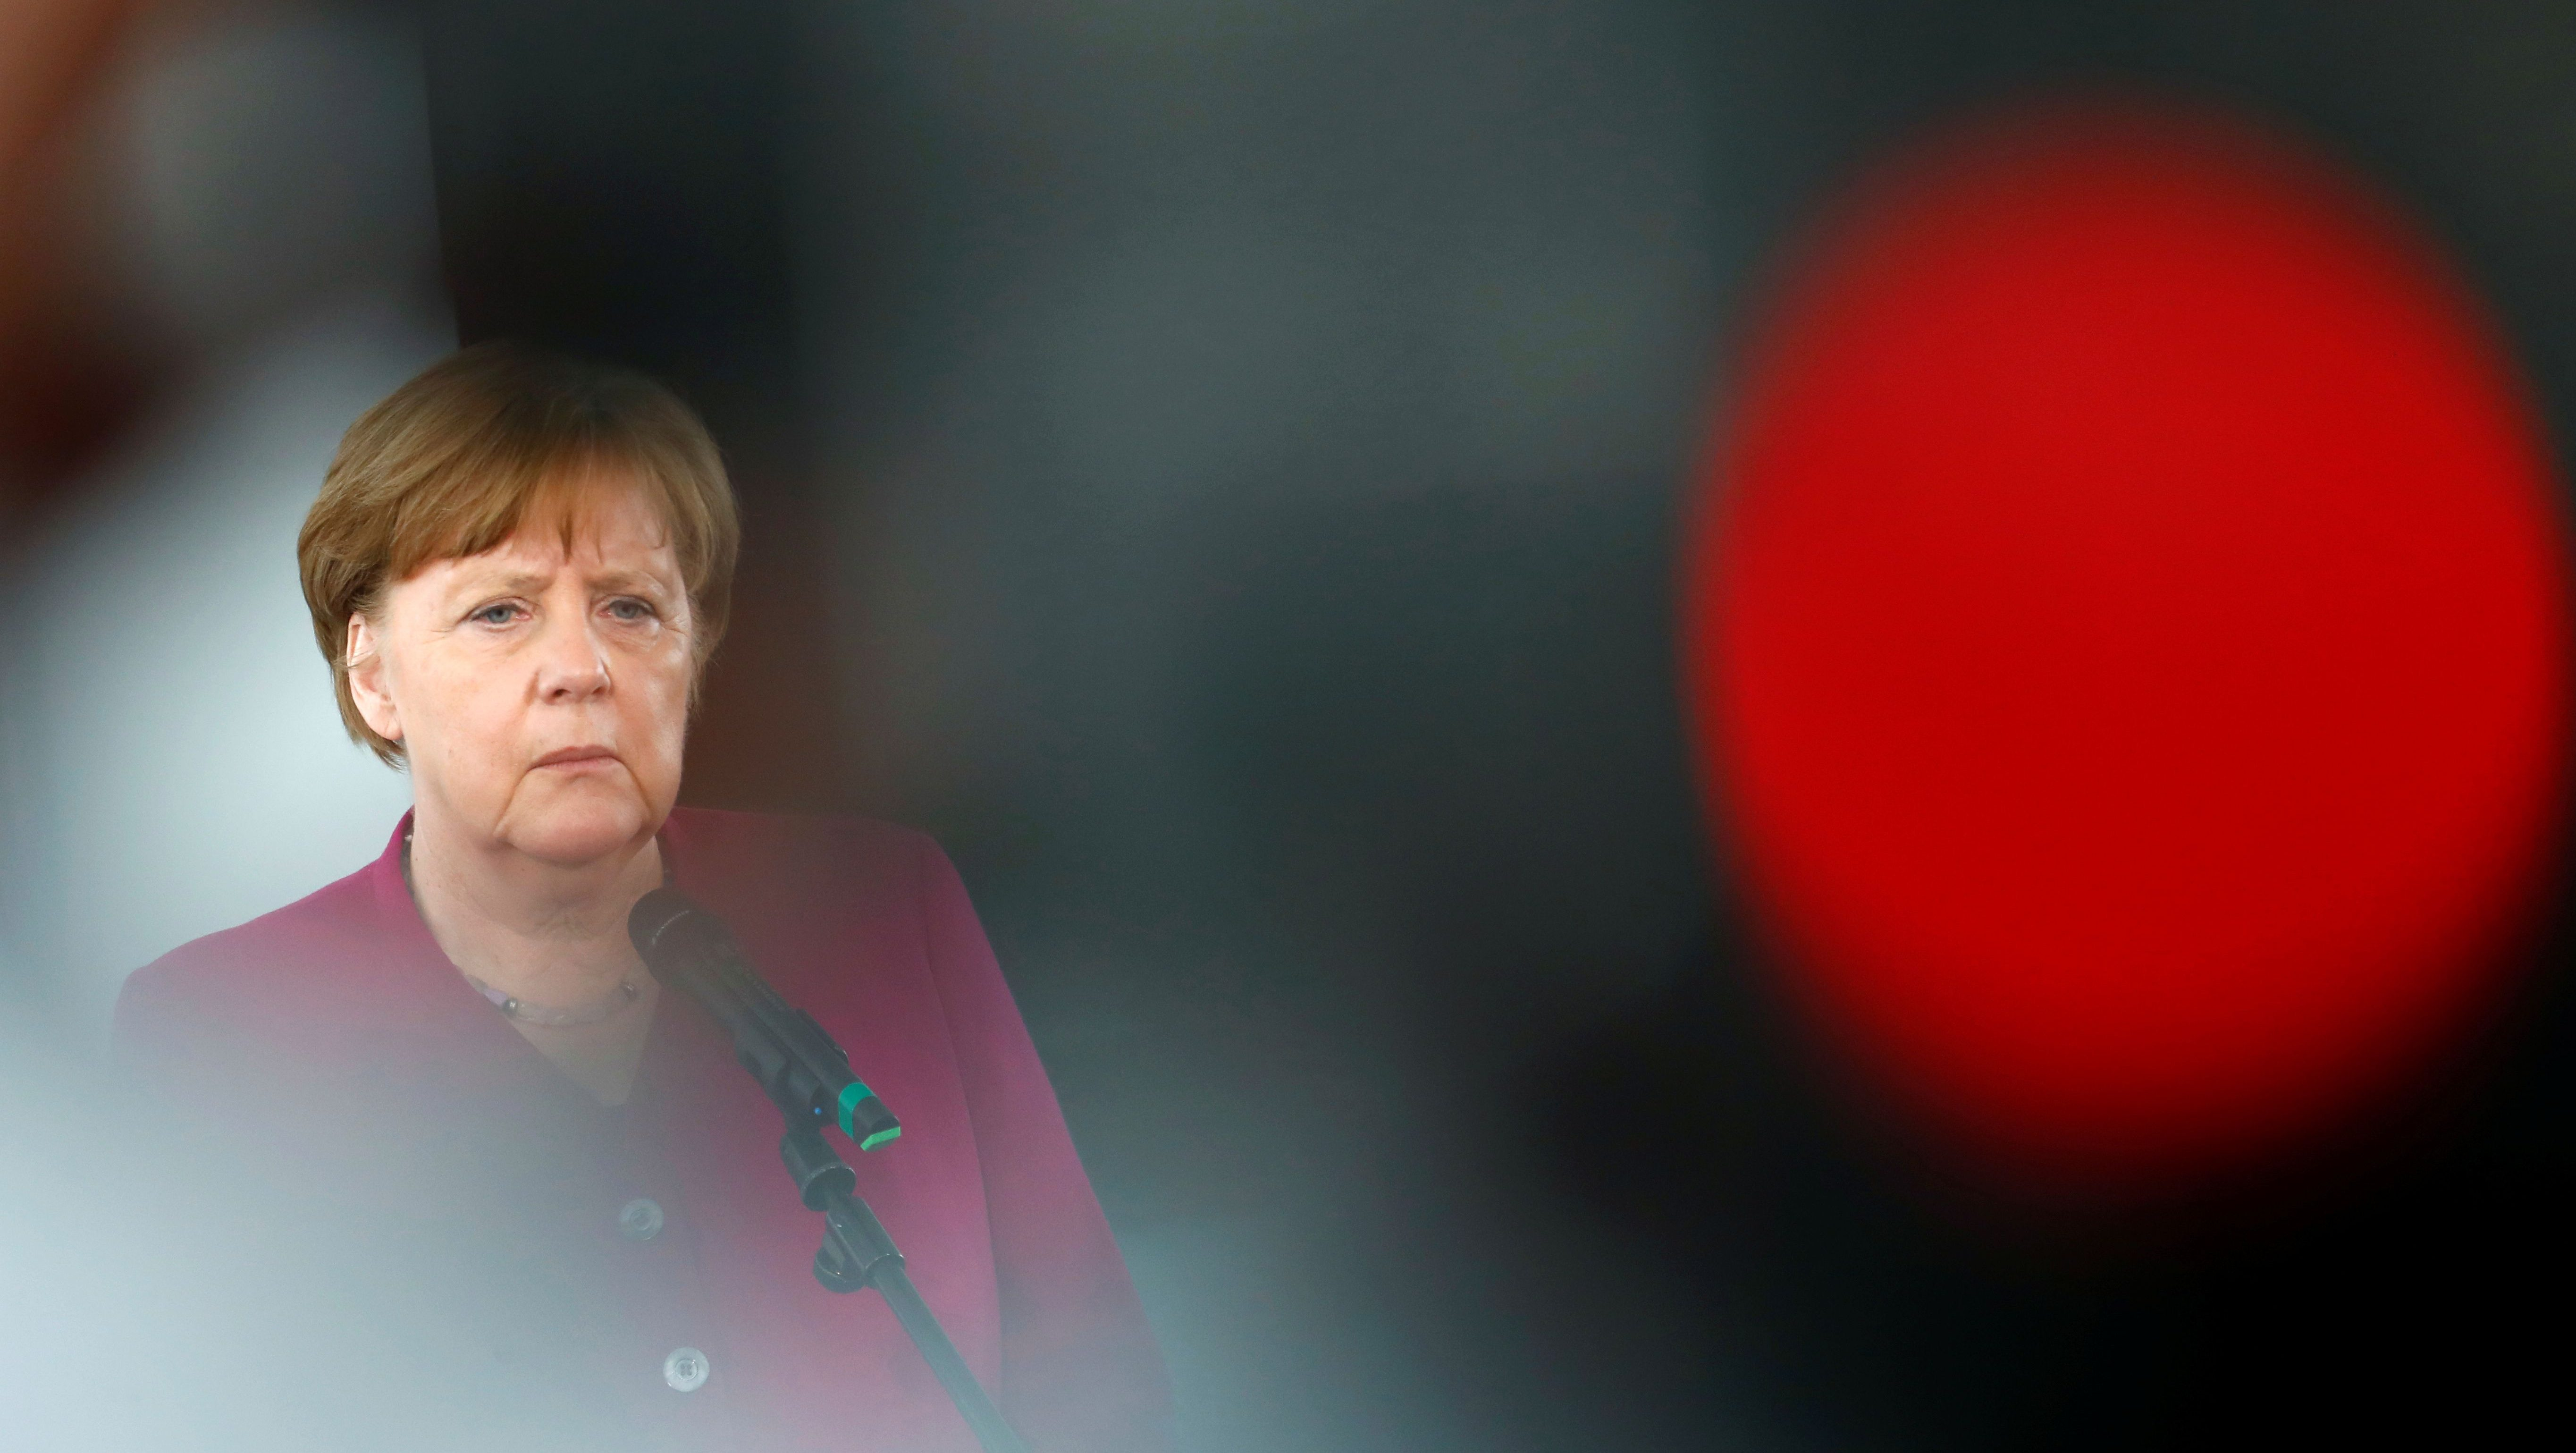 German Chancellor Angela Merkel had to reduce her refugee policy